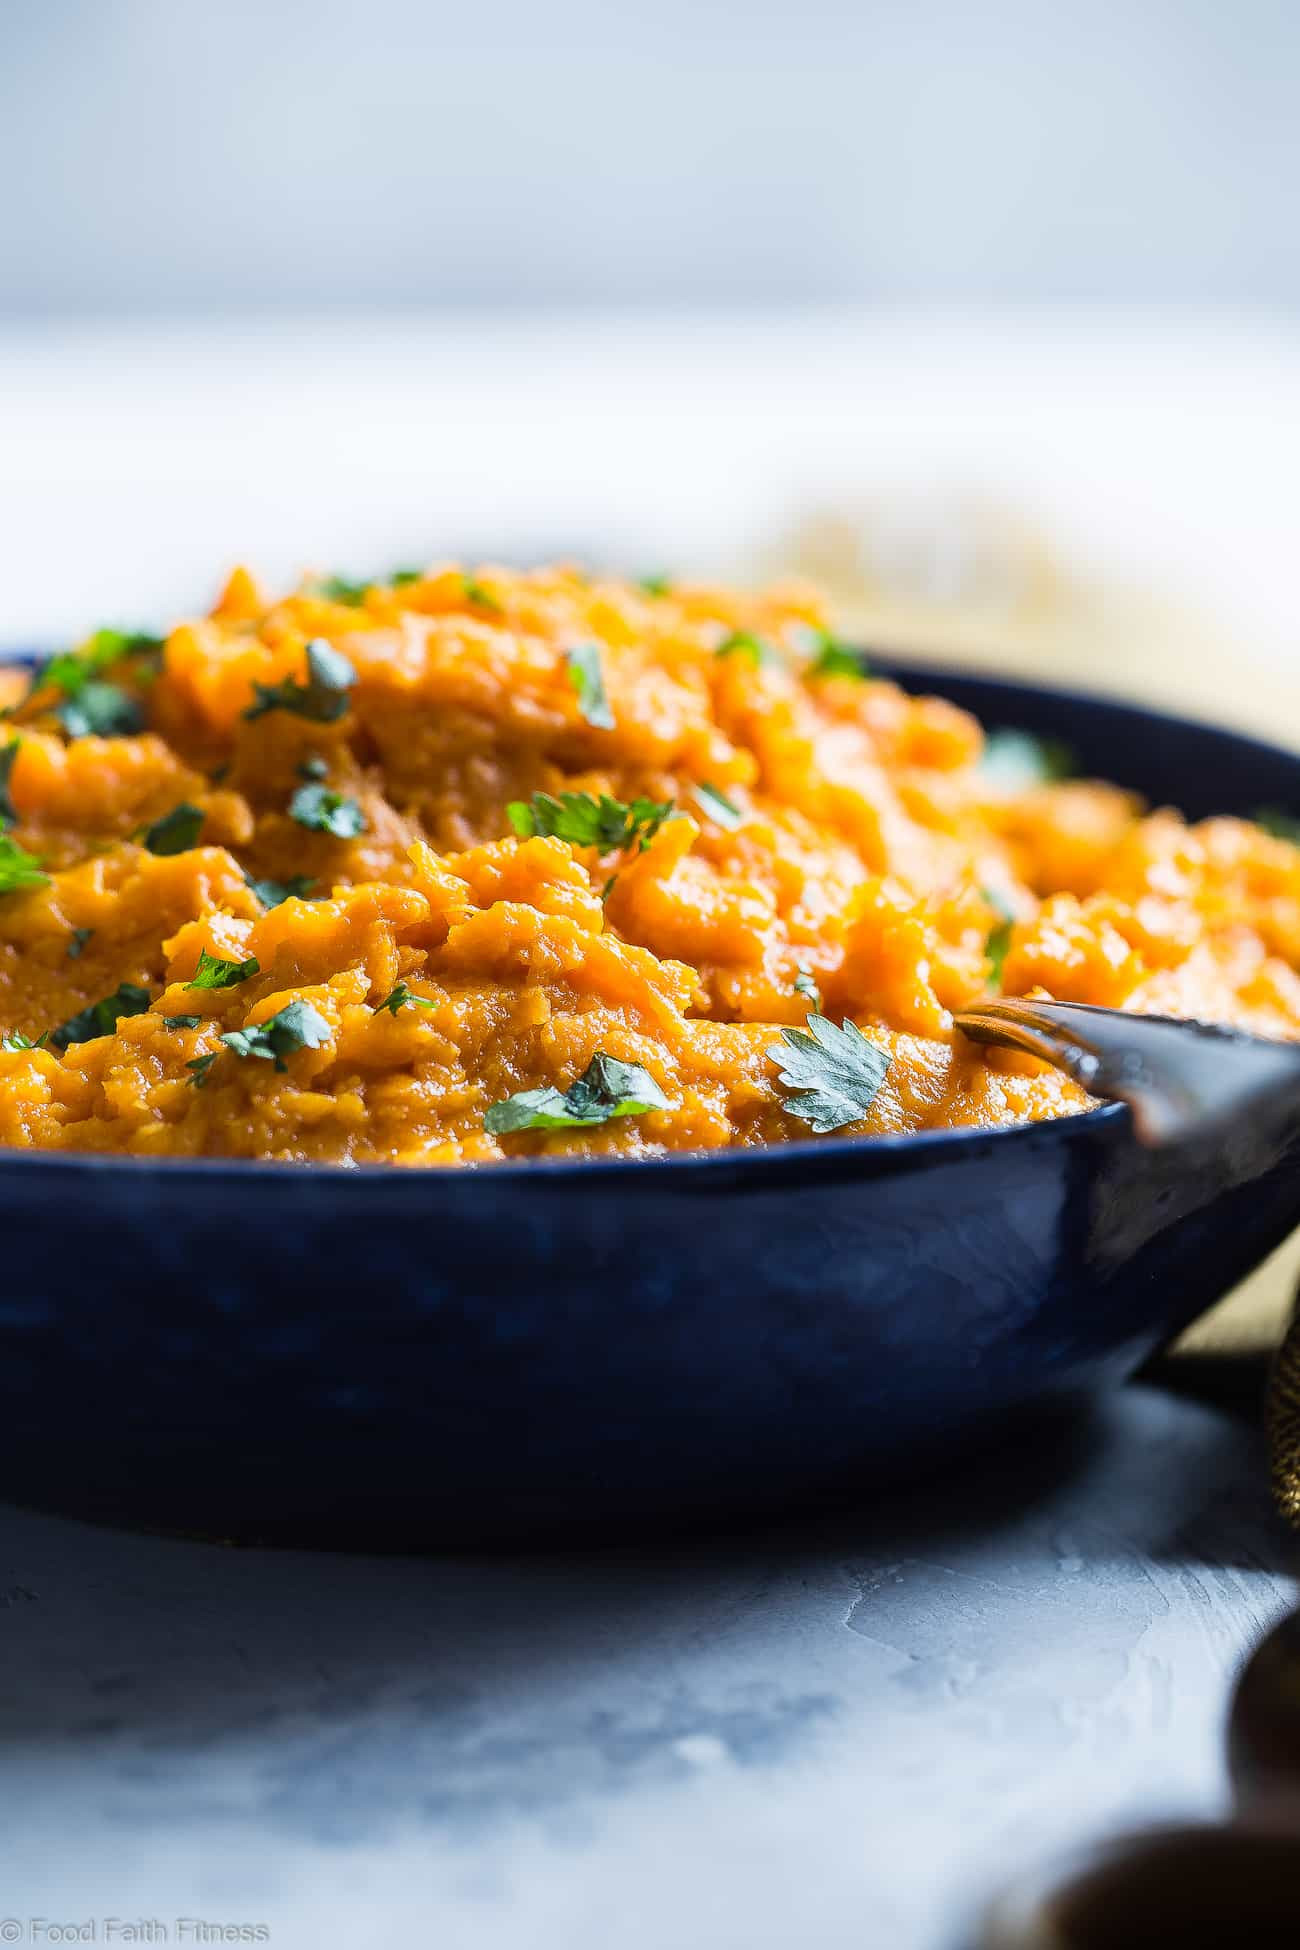 Healthy Mashed Sweet Potatoes  Curried Savory Vegan Healthy Mashed Sweet Potatoes